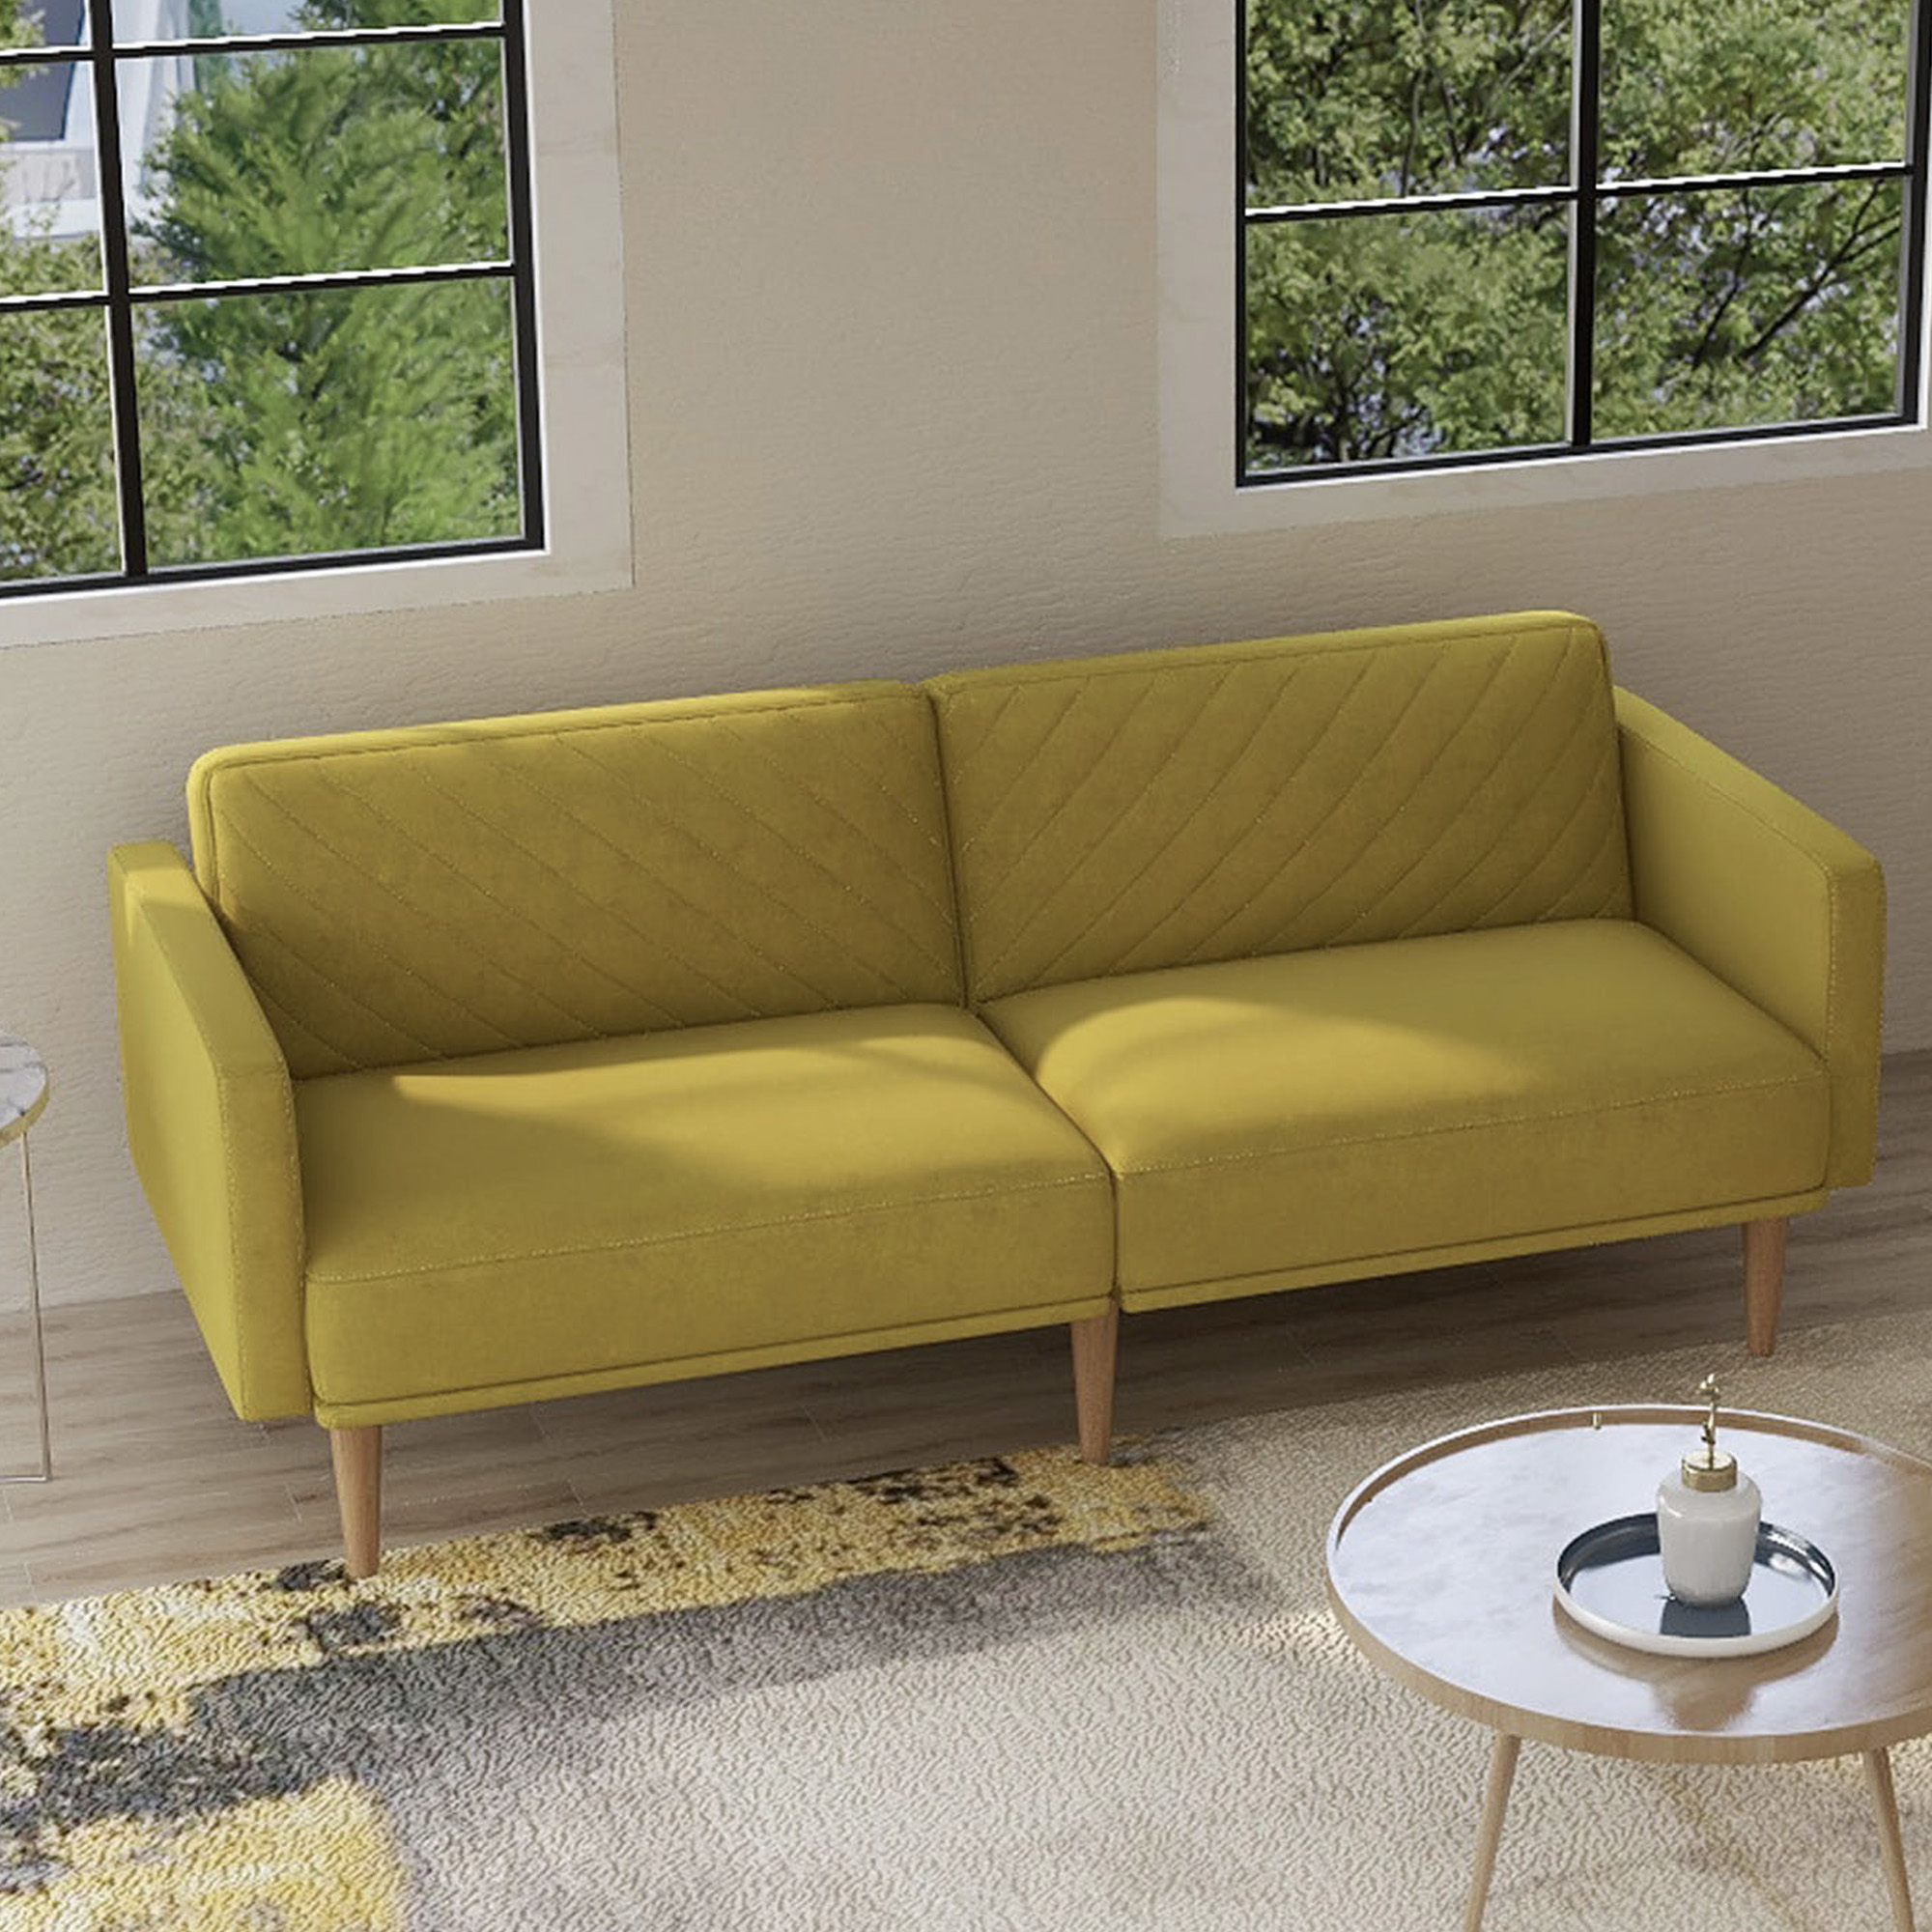 Current Mireille Modern And Contemporary Fabric Upholstered Sectional Sofas With Velvet Fabric Sofa Beds, Urhomepro Mid Century Modern (View 5 of 25)